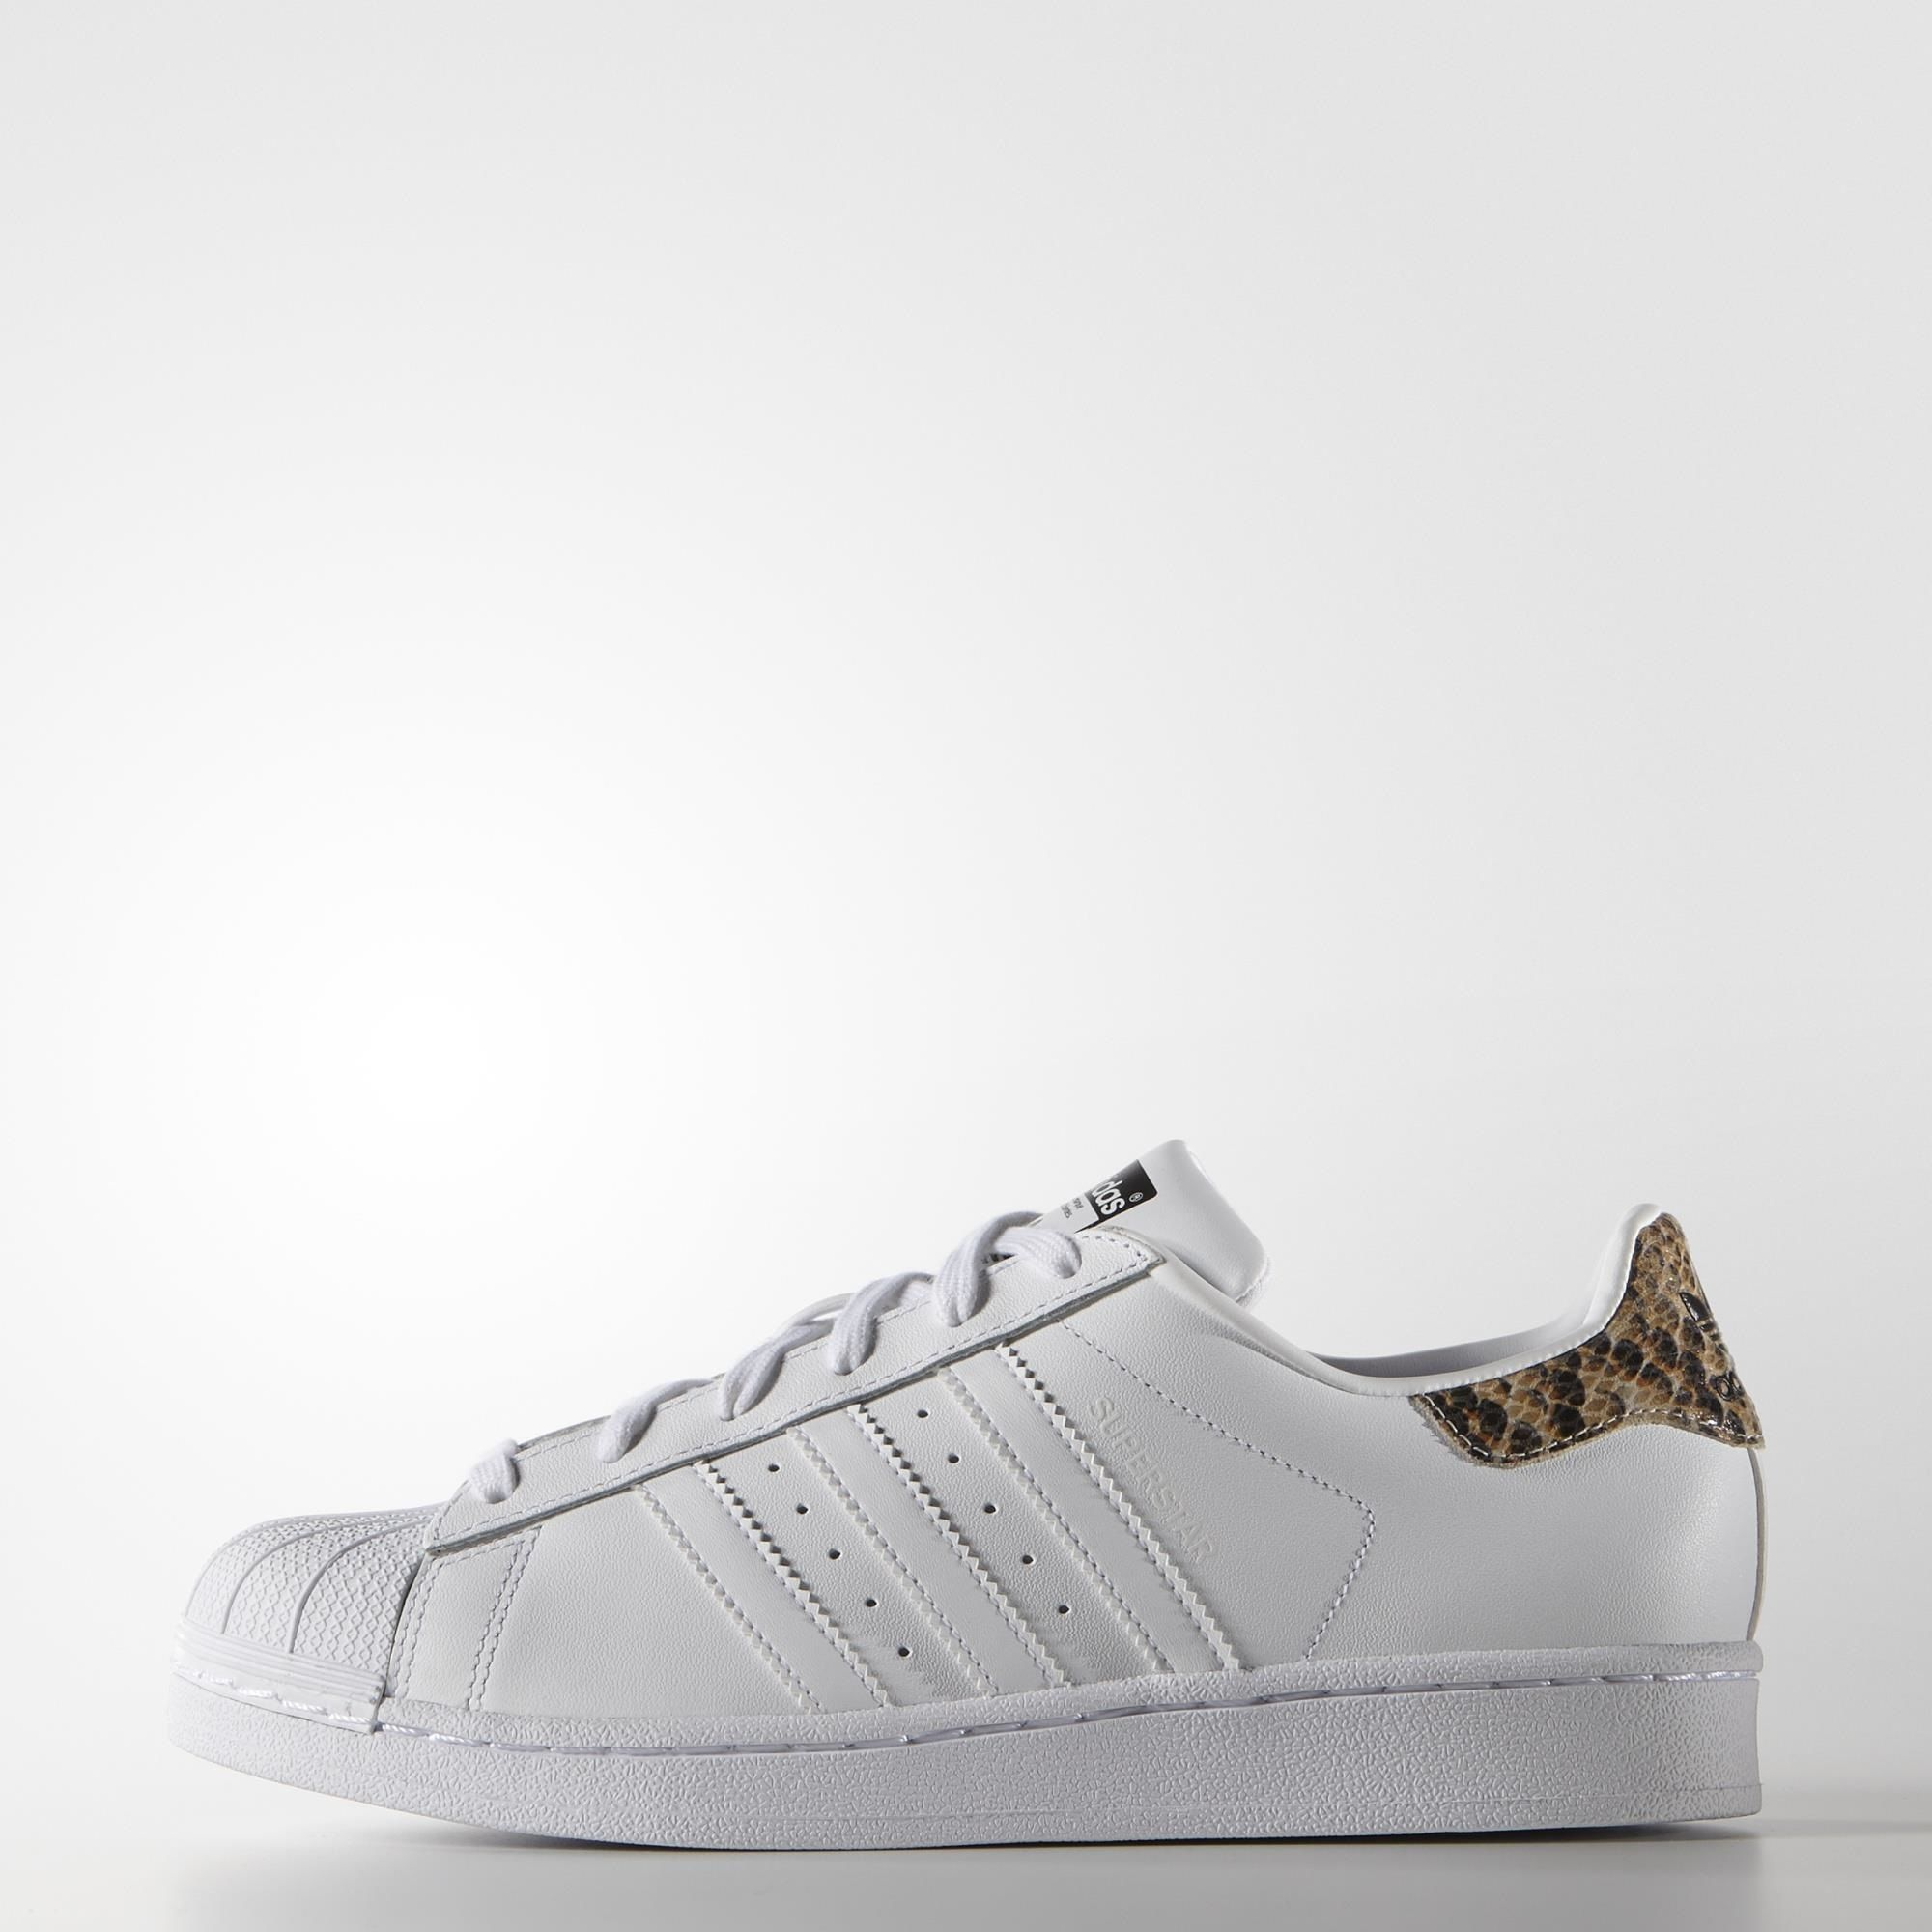 Adidas Superstar Crocodile Blanche